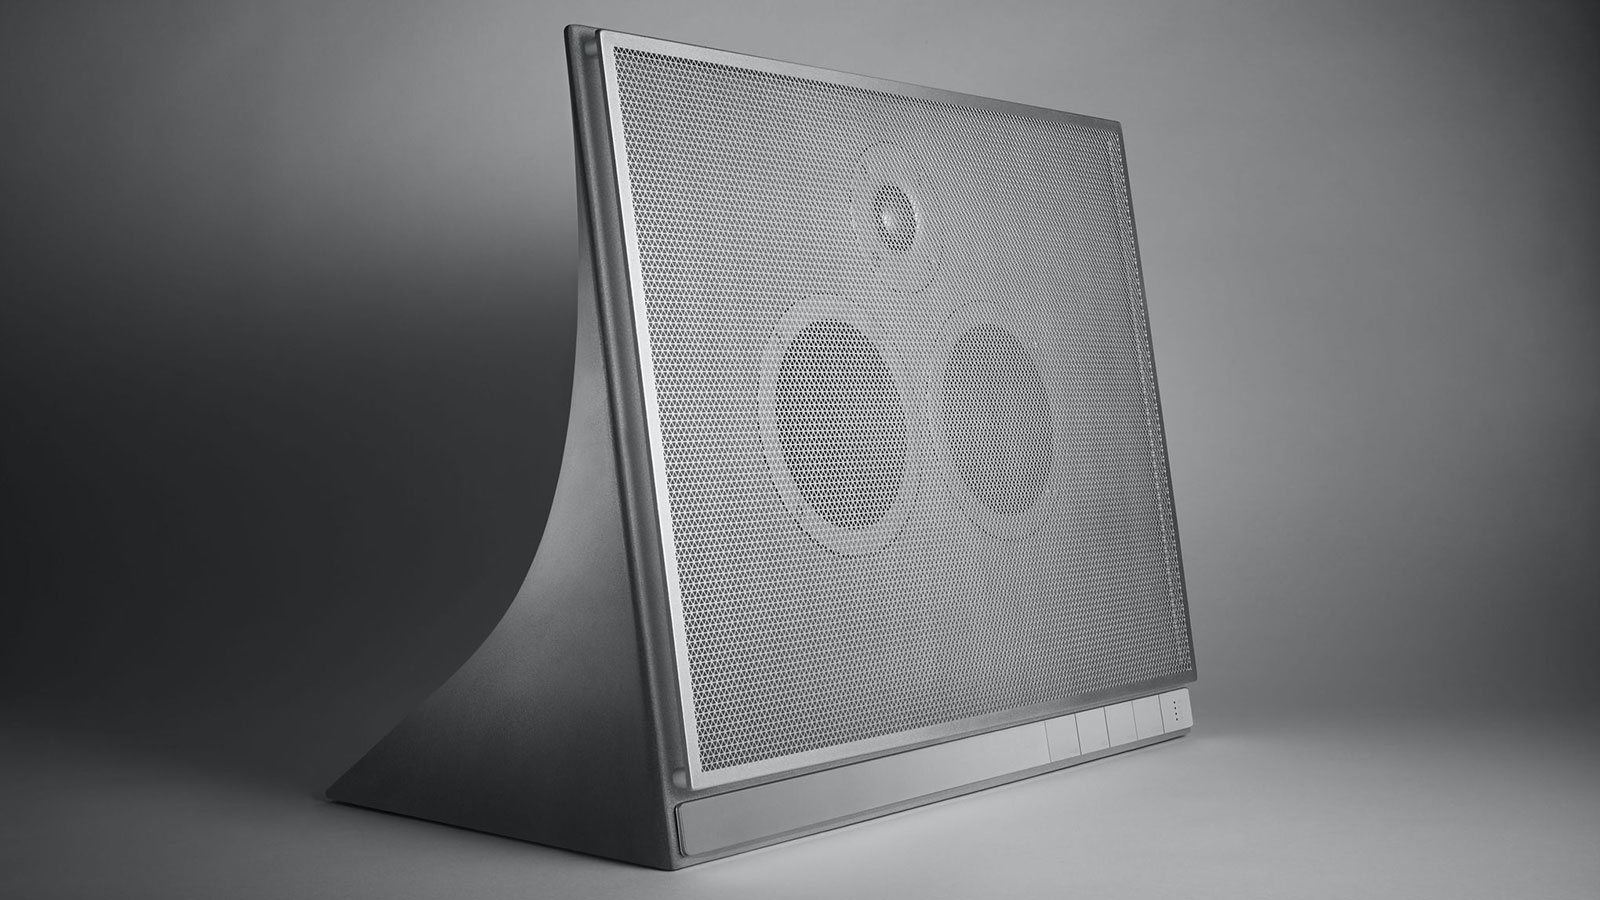 MASTER & DYNAMICS MA770 WIRELESS SPEAKER IS MADE FROM CONCRETE